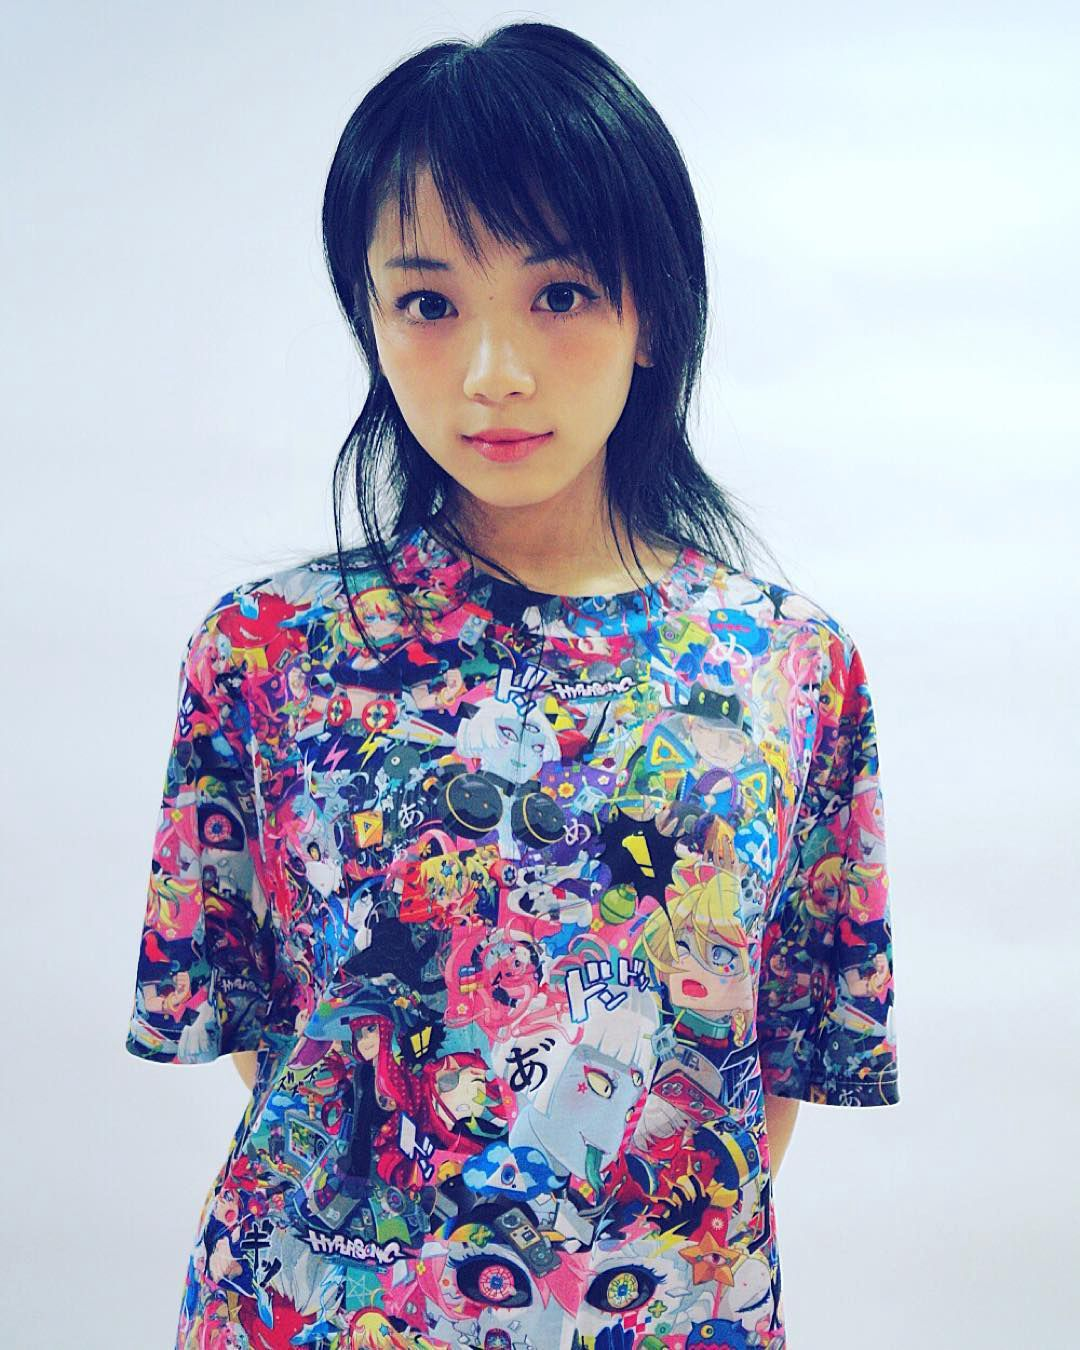 Model YURA wearing a HYPERSONIC music club T-shirt, as part of a collaboration between artist Hiroyuki-Mitsume Takahashi, jp fashion brand galaxxxy, and Crunchyroll Japan